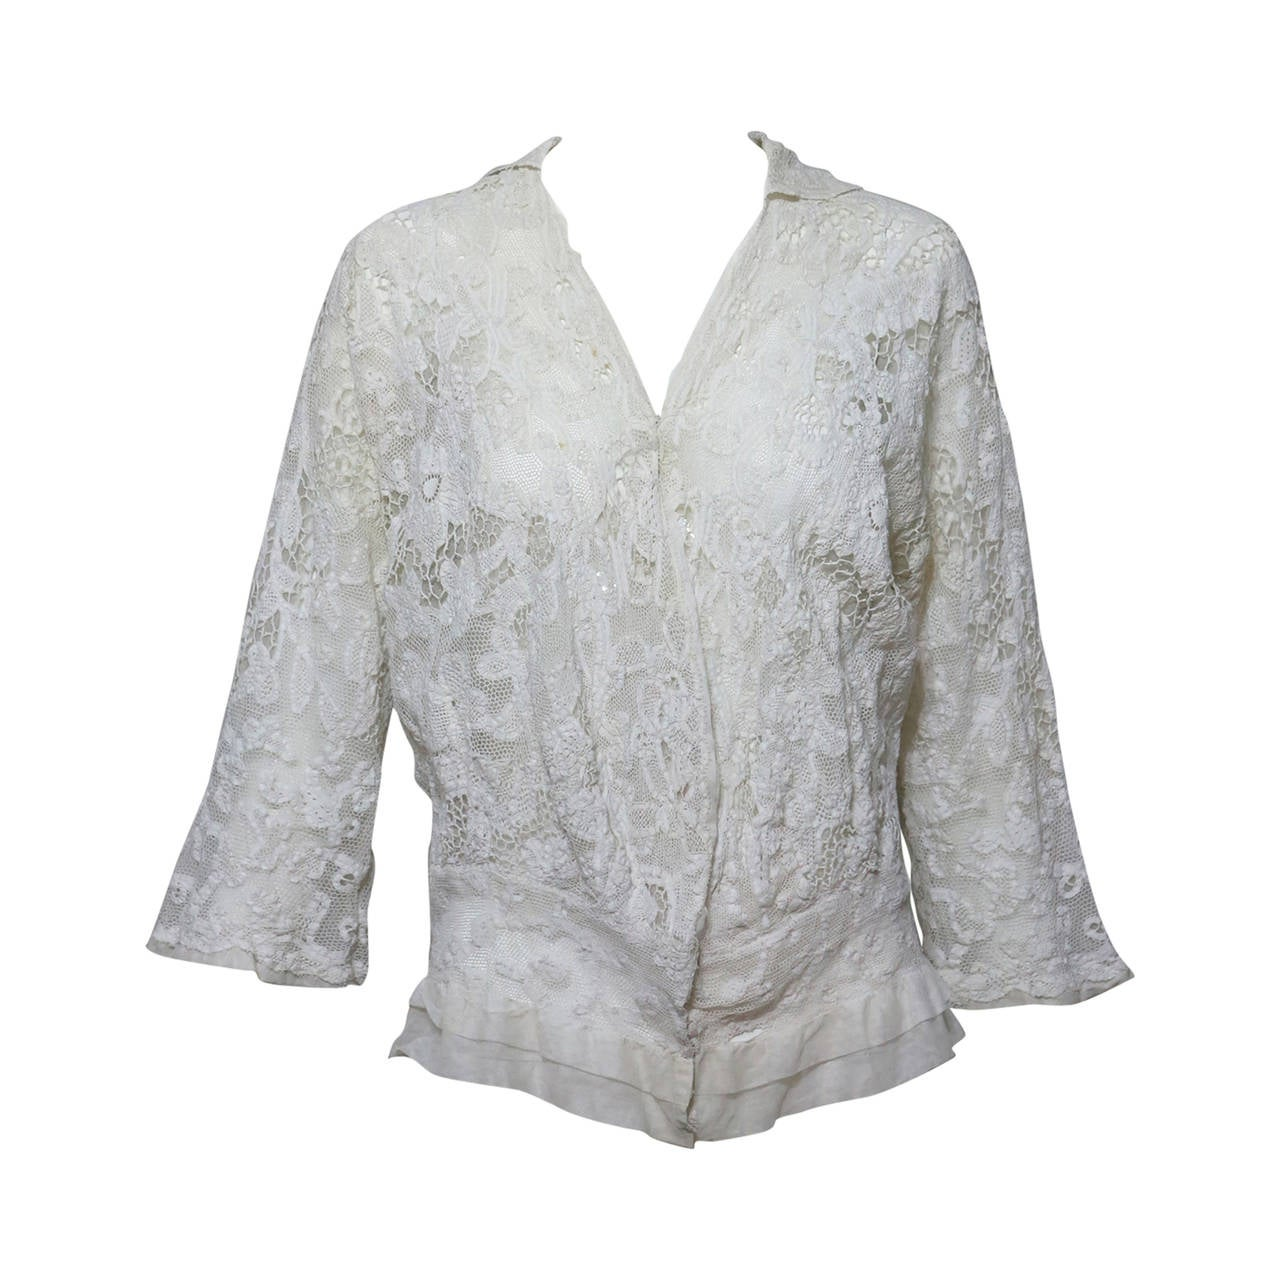 Handmade mixed lace lace Edwardian jacket in off white